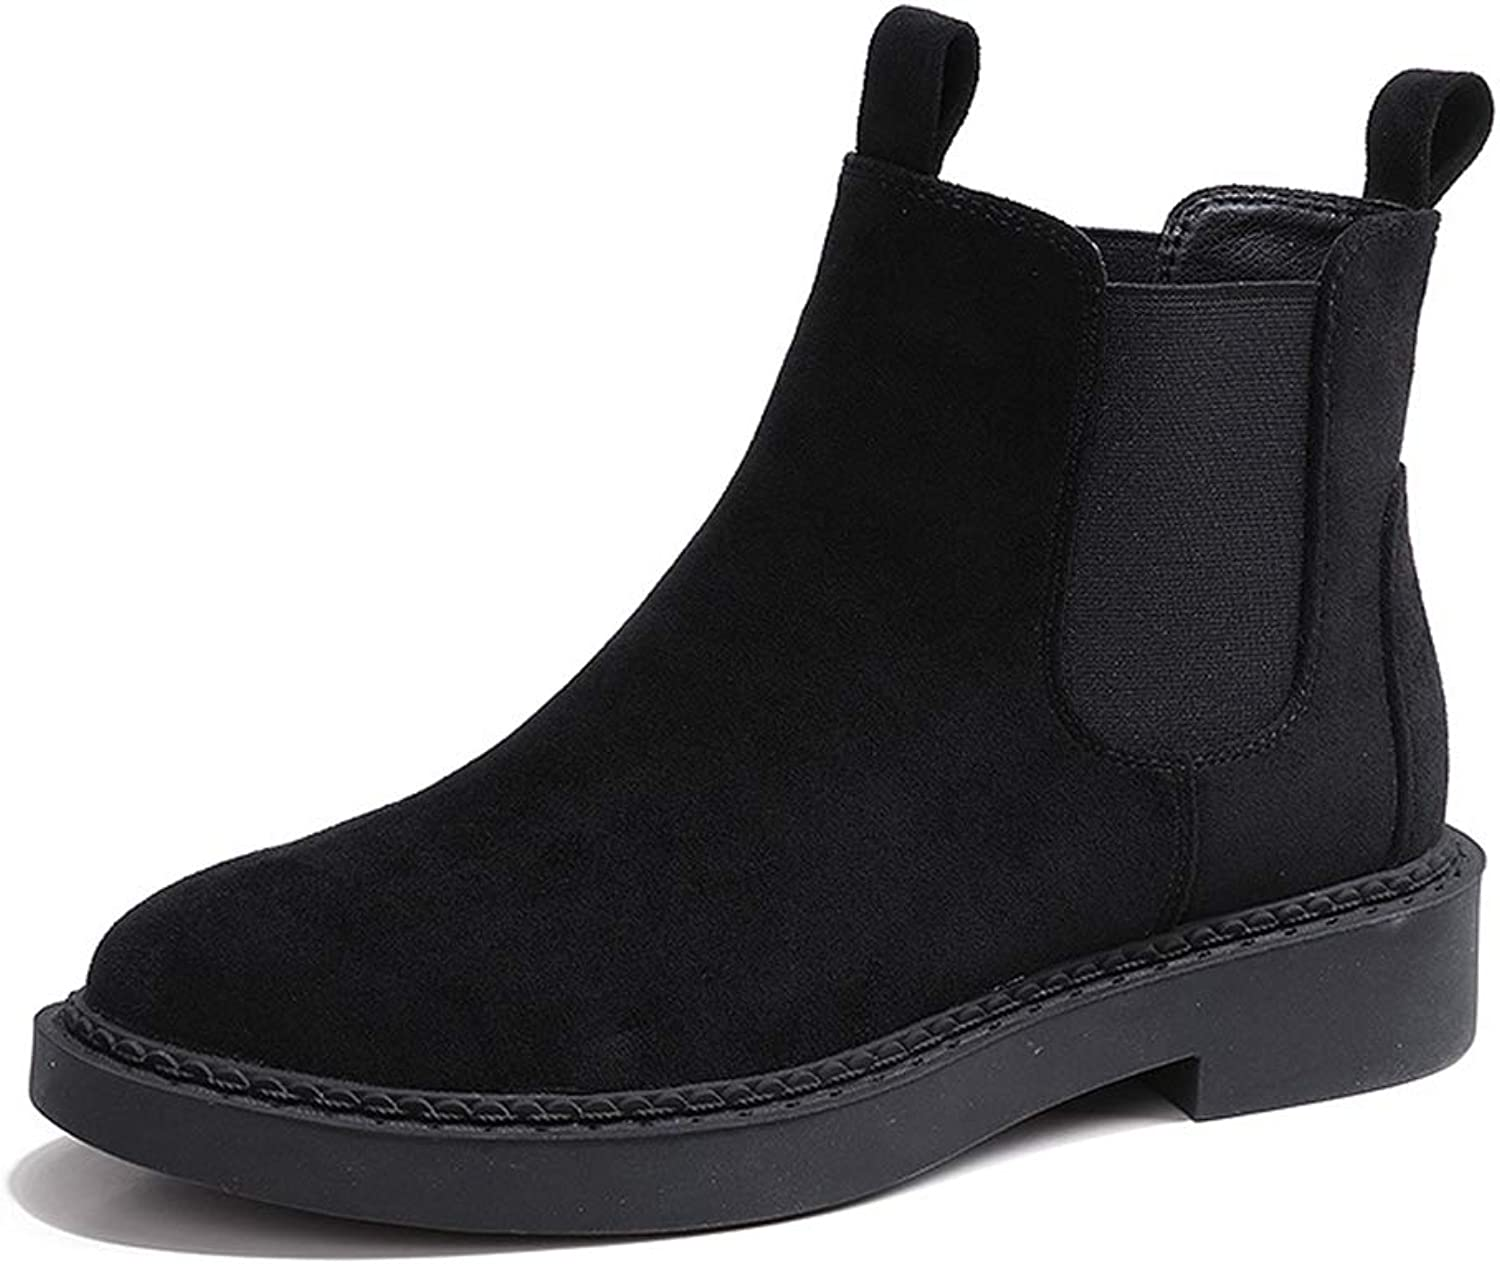 Kyle Walsh Pa Women's Winter Velvet Warm Low Heel Boots, Version of Wild Ankle Boots